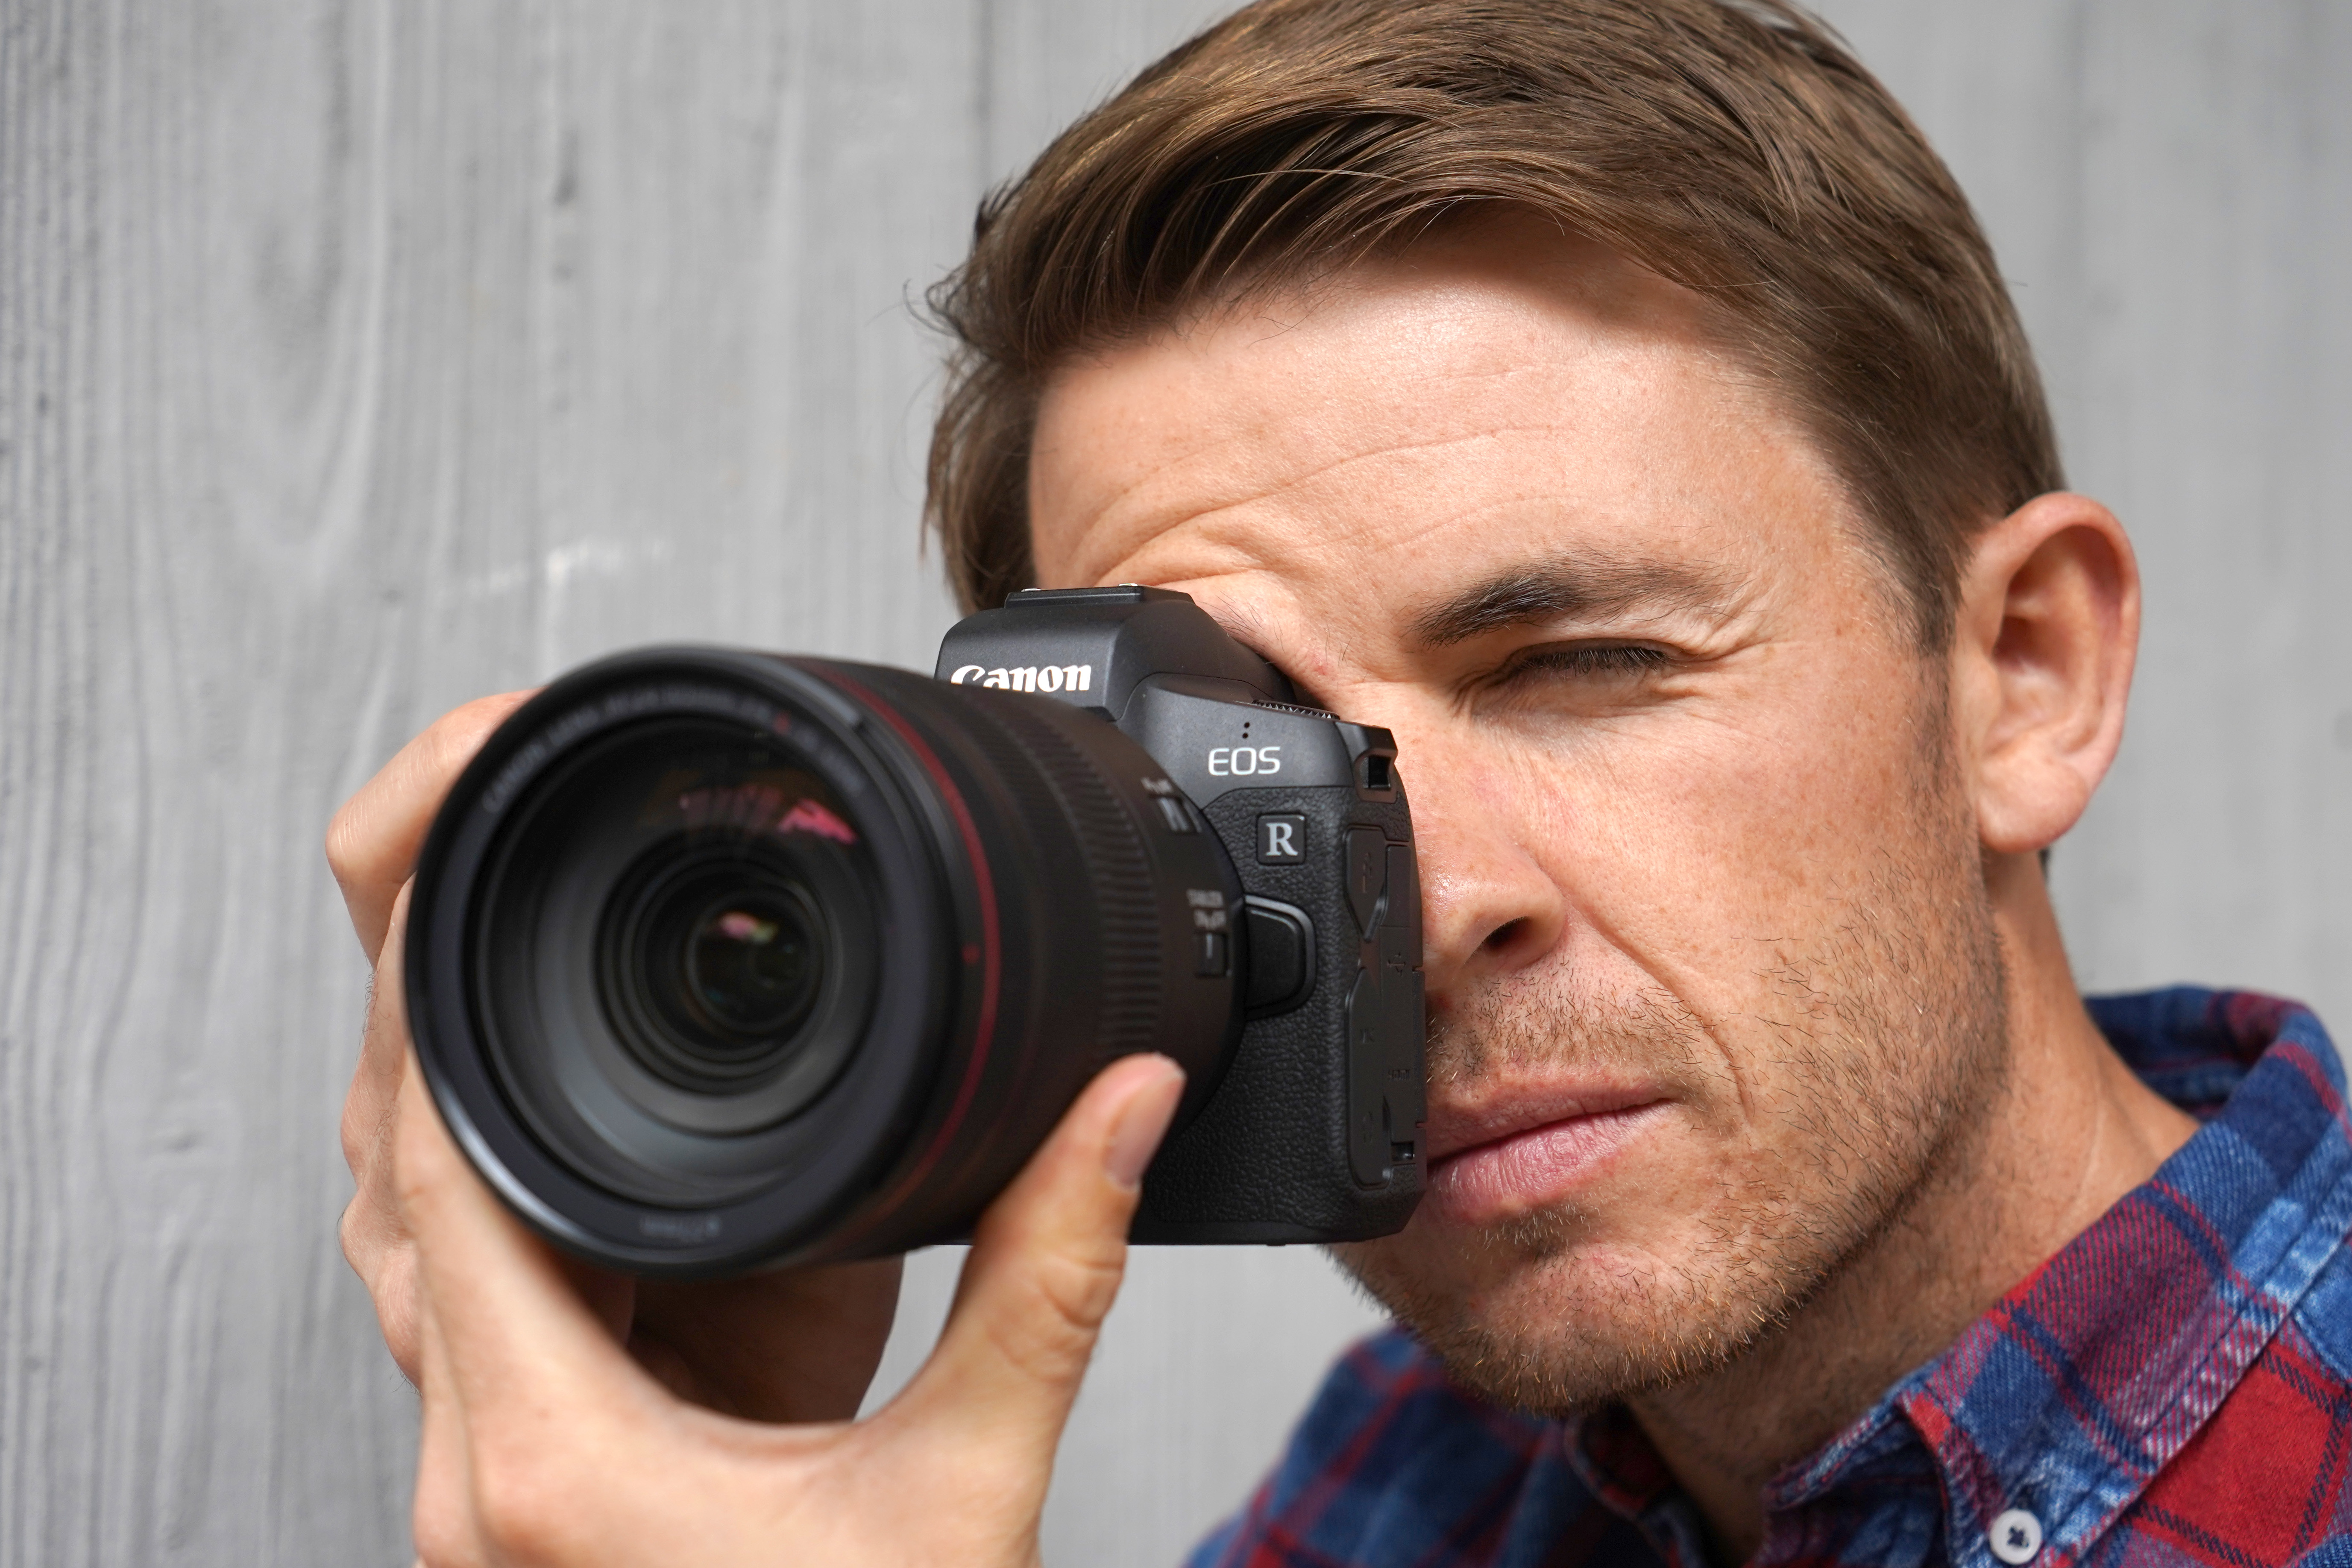 Canon EOS R review: hands on first look